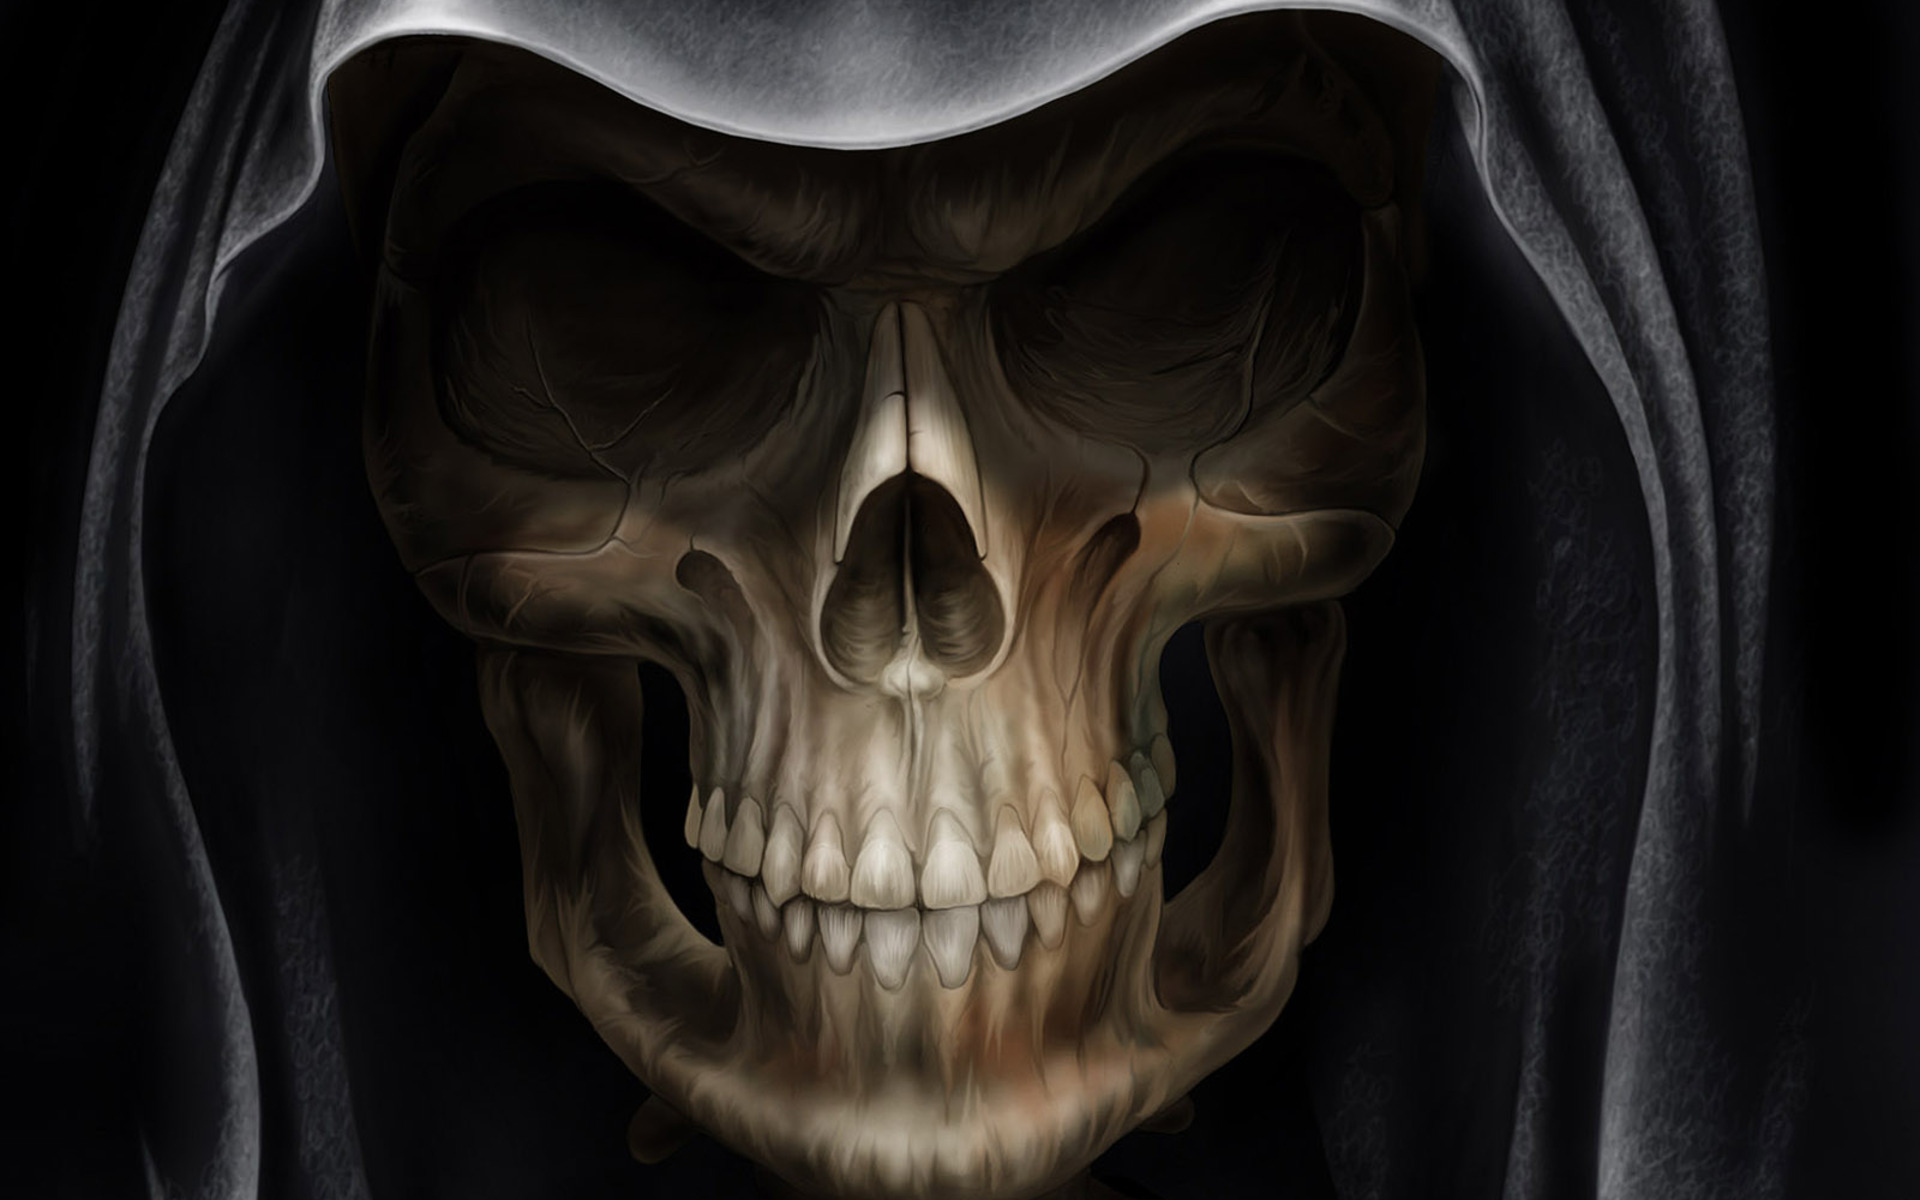 The story of the grim reaper - YouTube